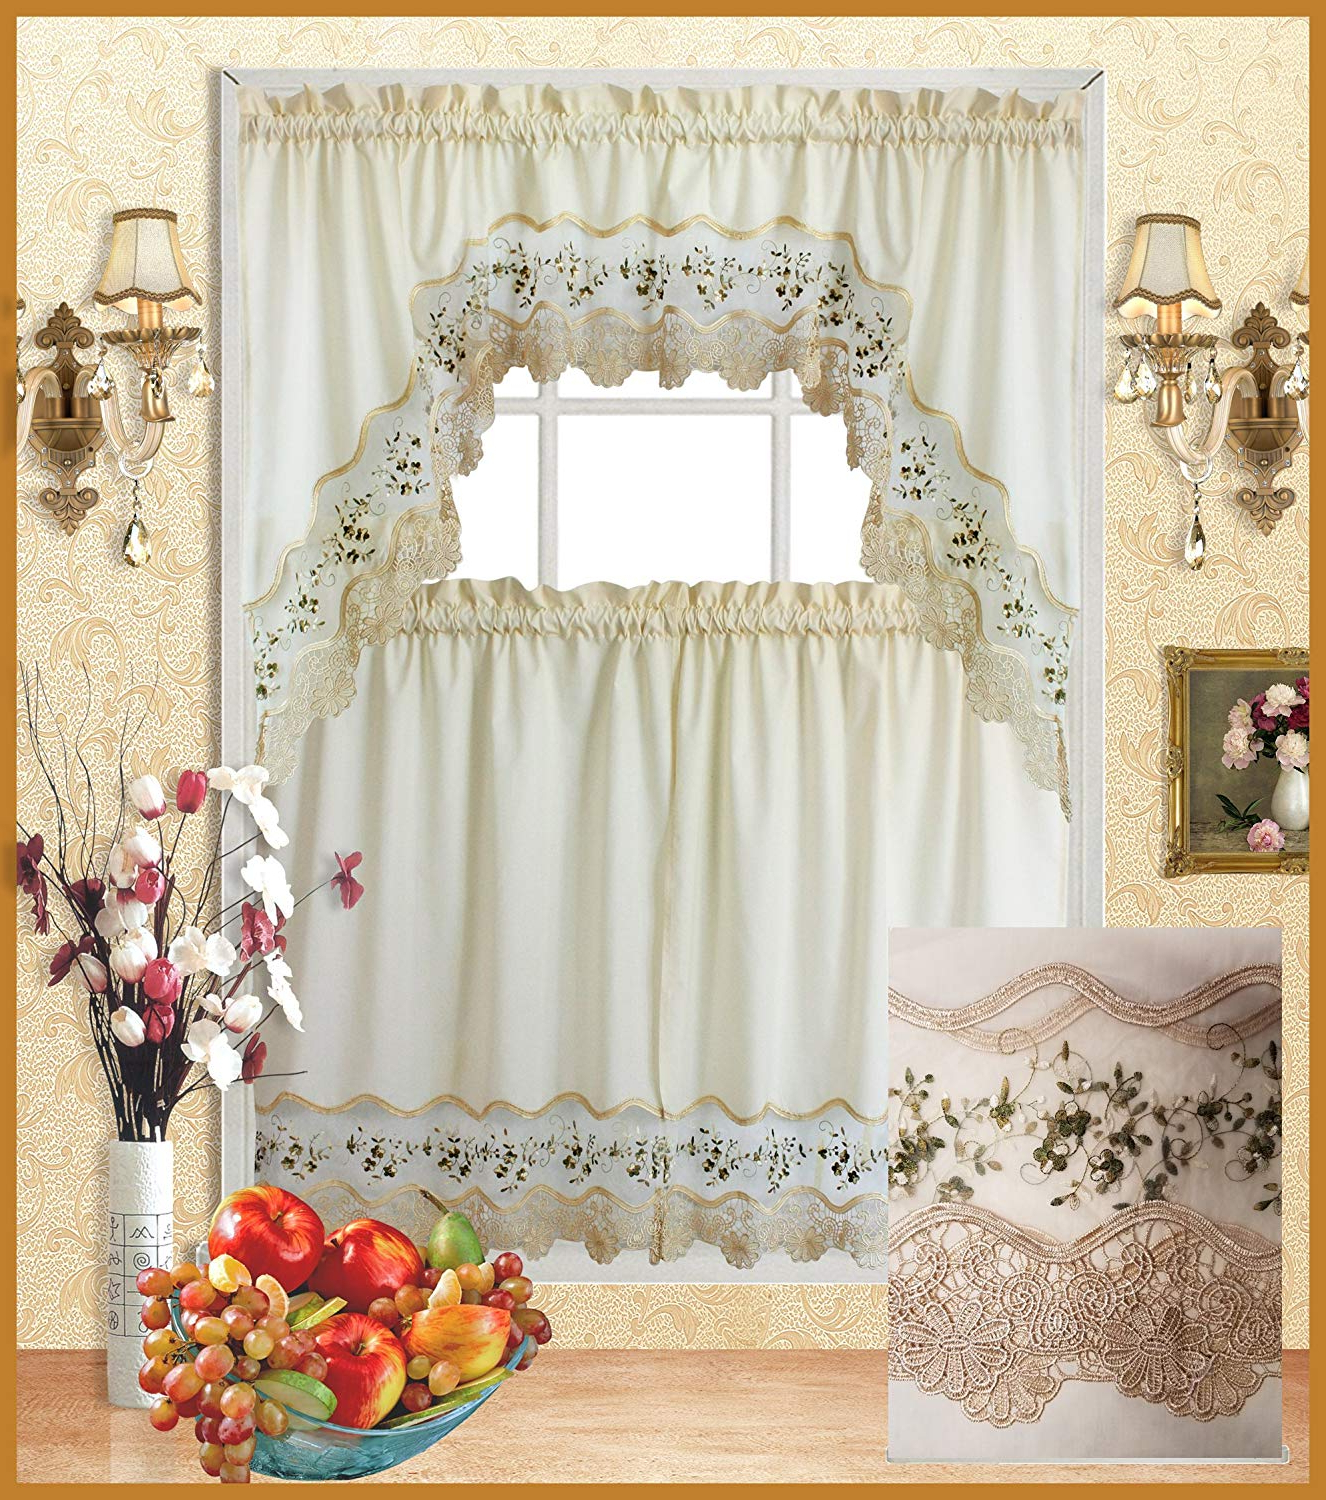 Fancy Collection 3Pc Beige With Embroidery Floral Kitchen/cafe Curtain Tier  And Valance Set 001092 (Blue/beige) Within Popular Cotton Blend Ivy Floral Tier Curtain And Swag Sets (Gallery 12 of 20)